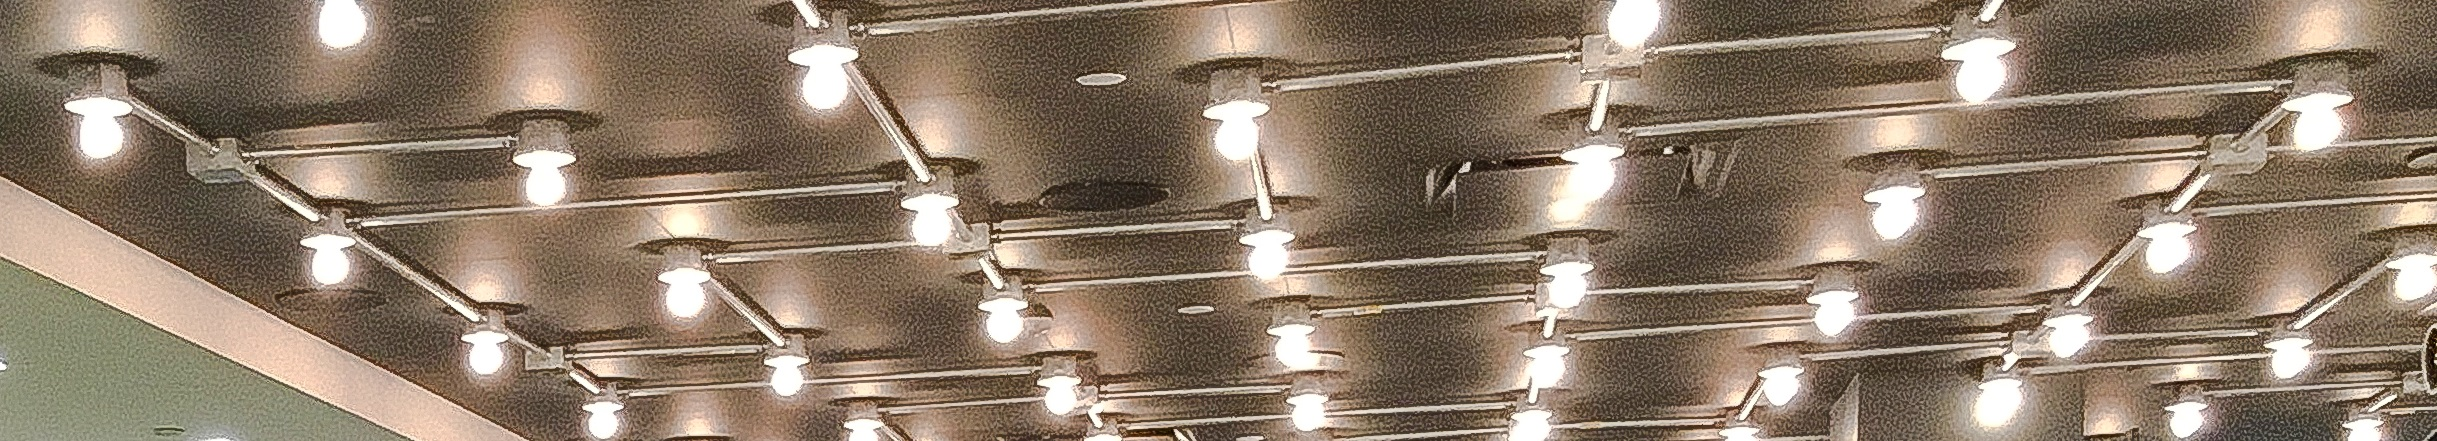 Do You Know What Your Light Fixtures Are Capable Of?